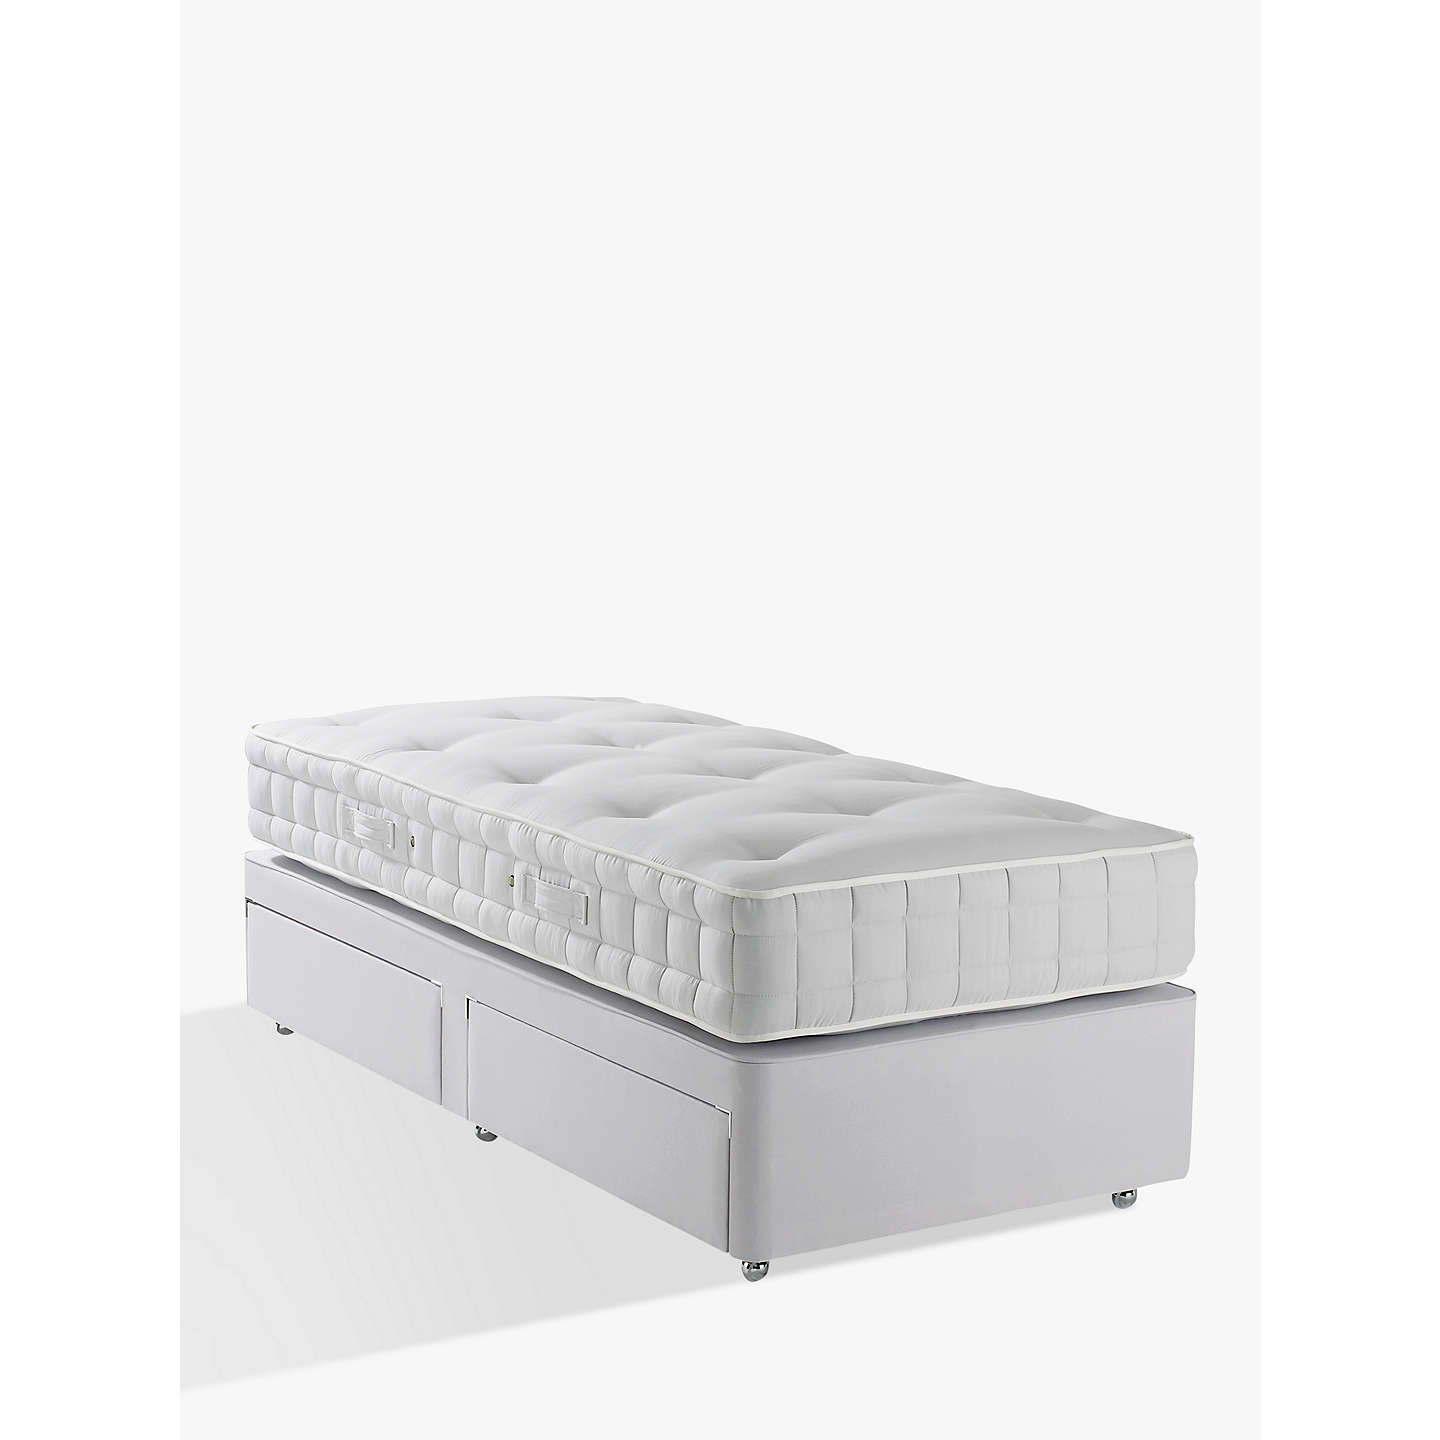 John lewis non sprung ortho divan storage bed grey for Best single divan beds